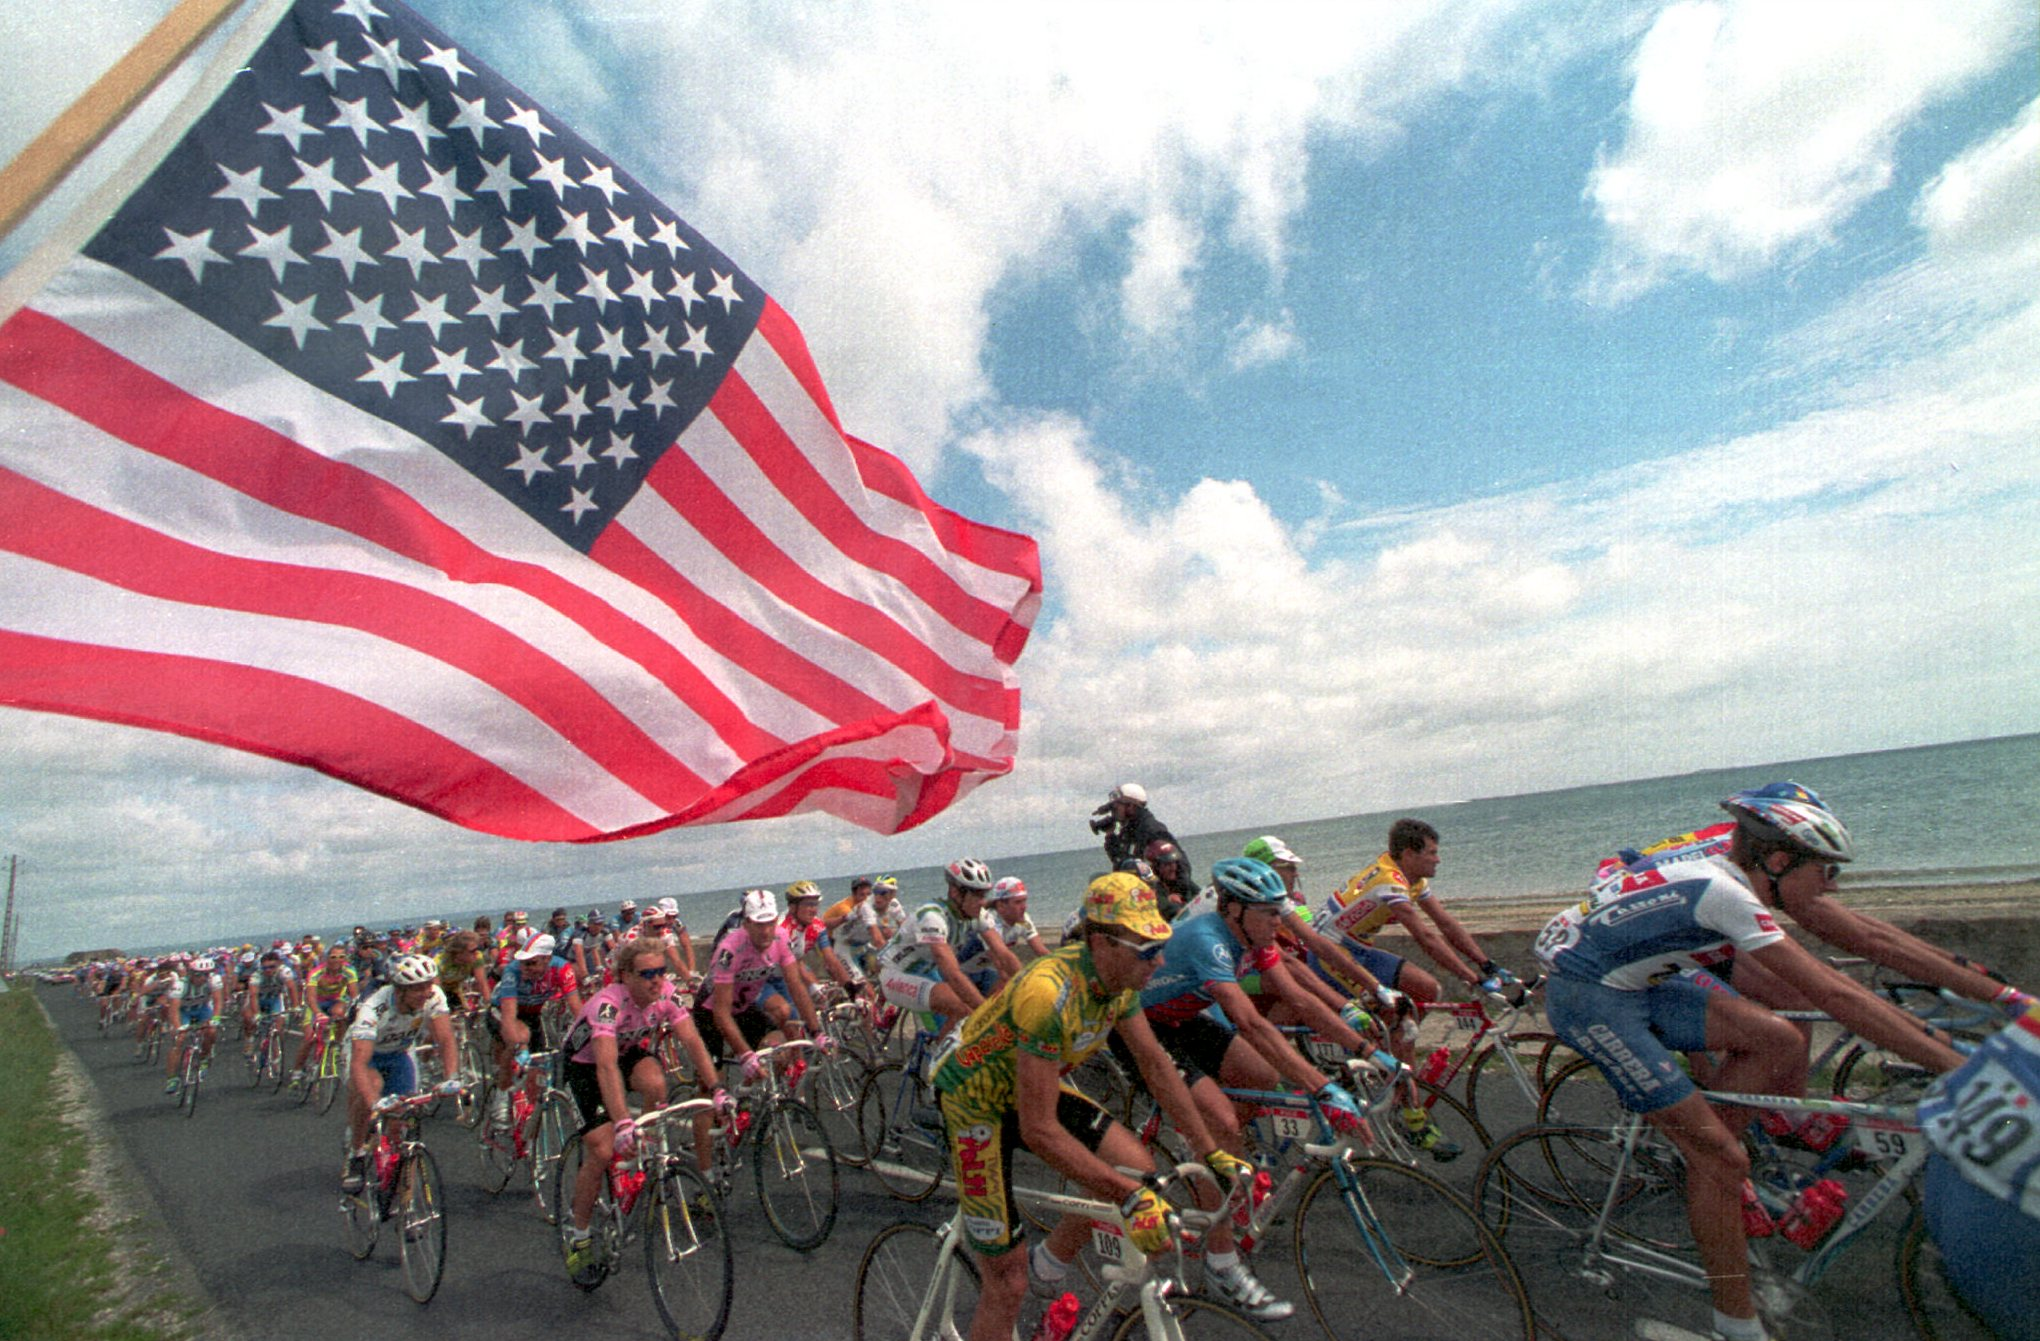 The American flag flutters in the air in the foreground as the pack of riders pass under it on their way up the coast during stage six of the Tour de France in 1994.